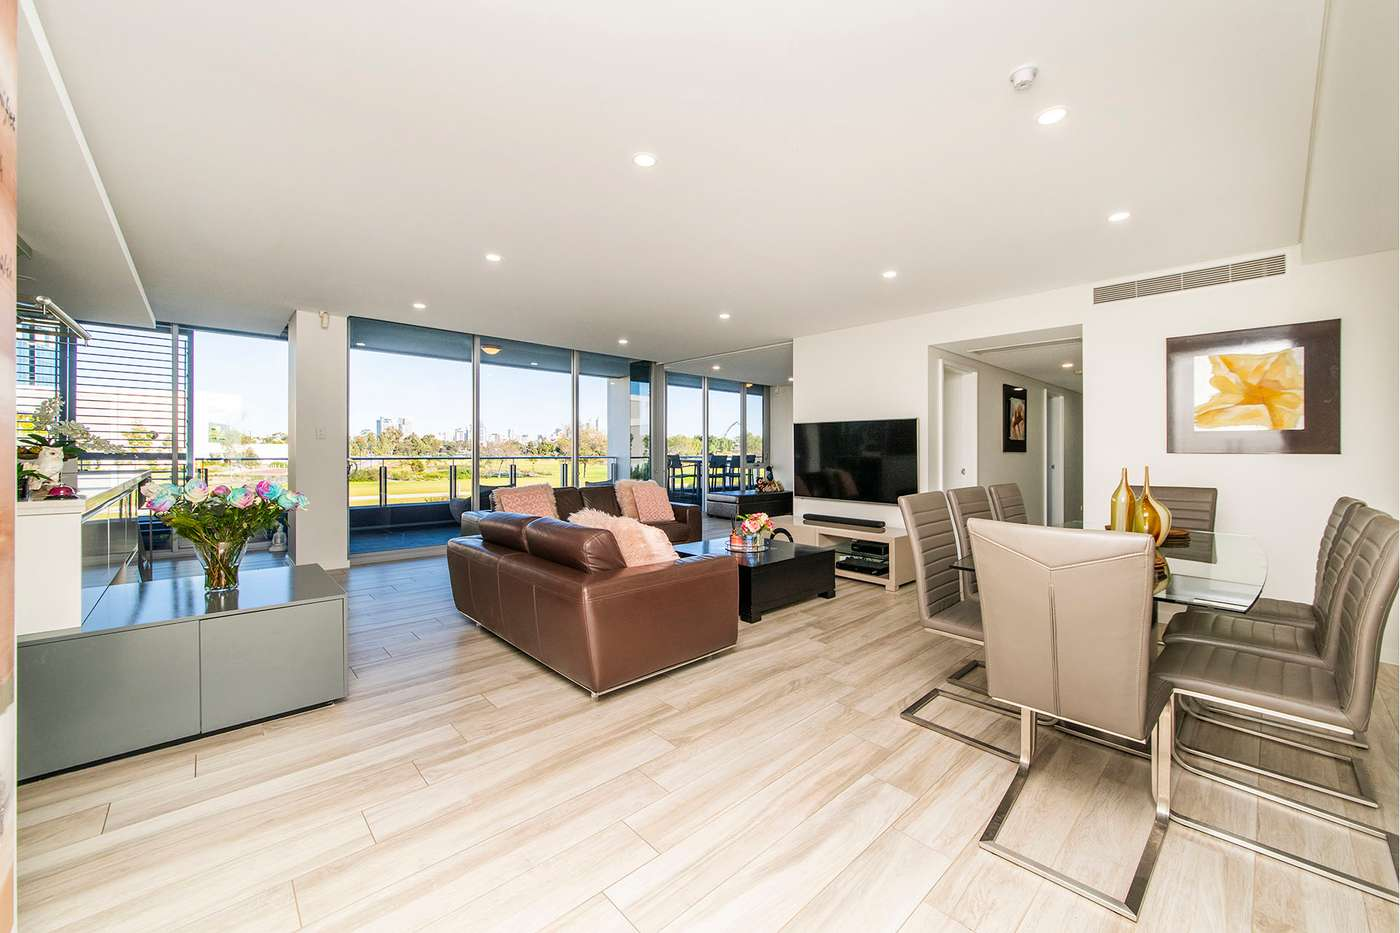 Main view of Homely apartment listing, 9/23 Bow River Crescent, Burswood, WA 6100